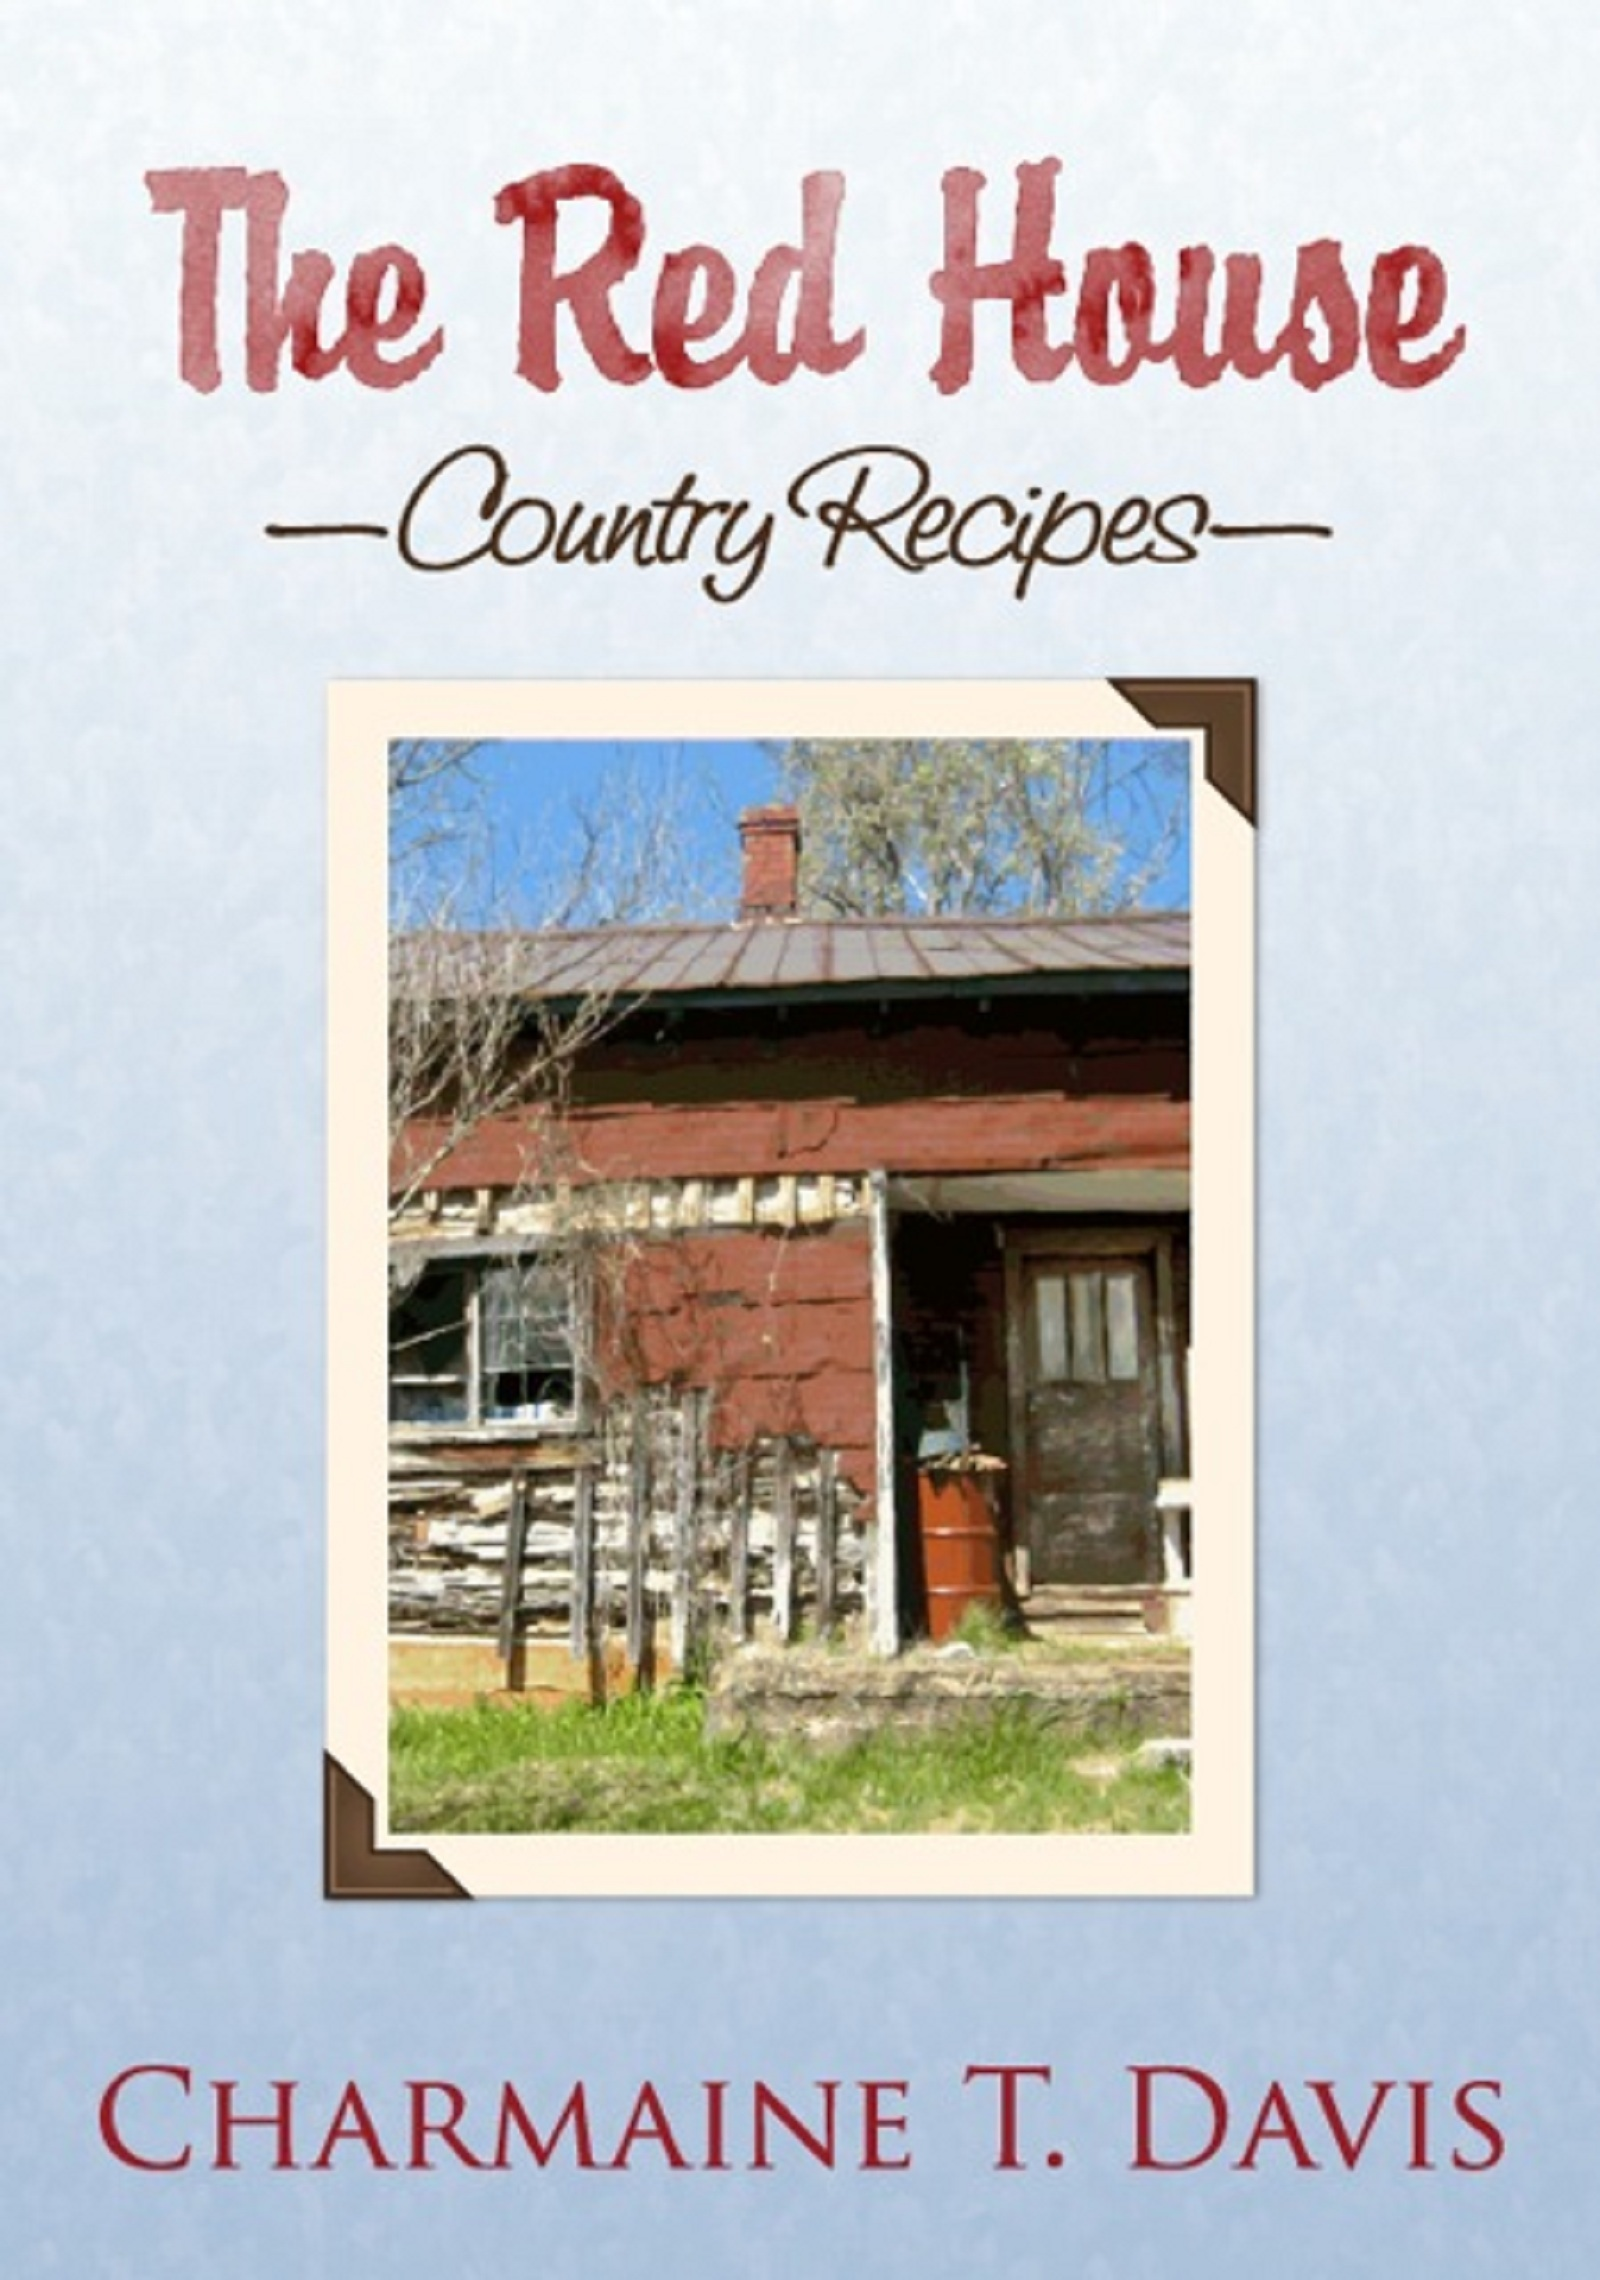 The Red House Country Recipes